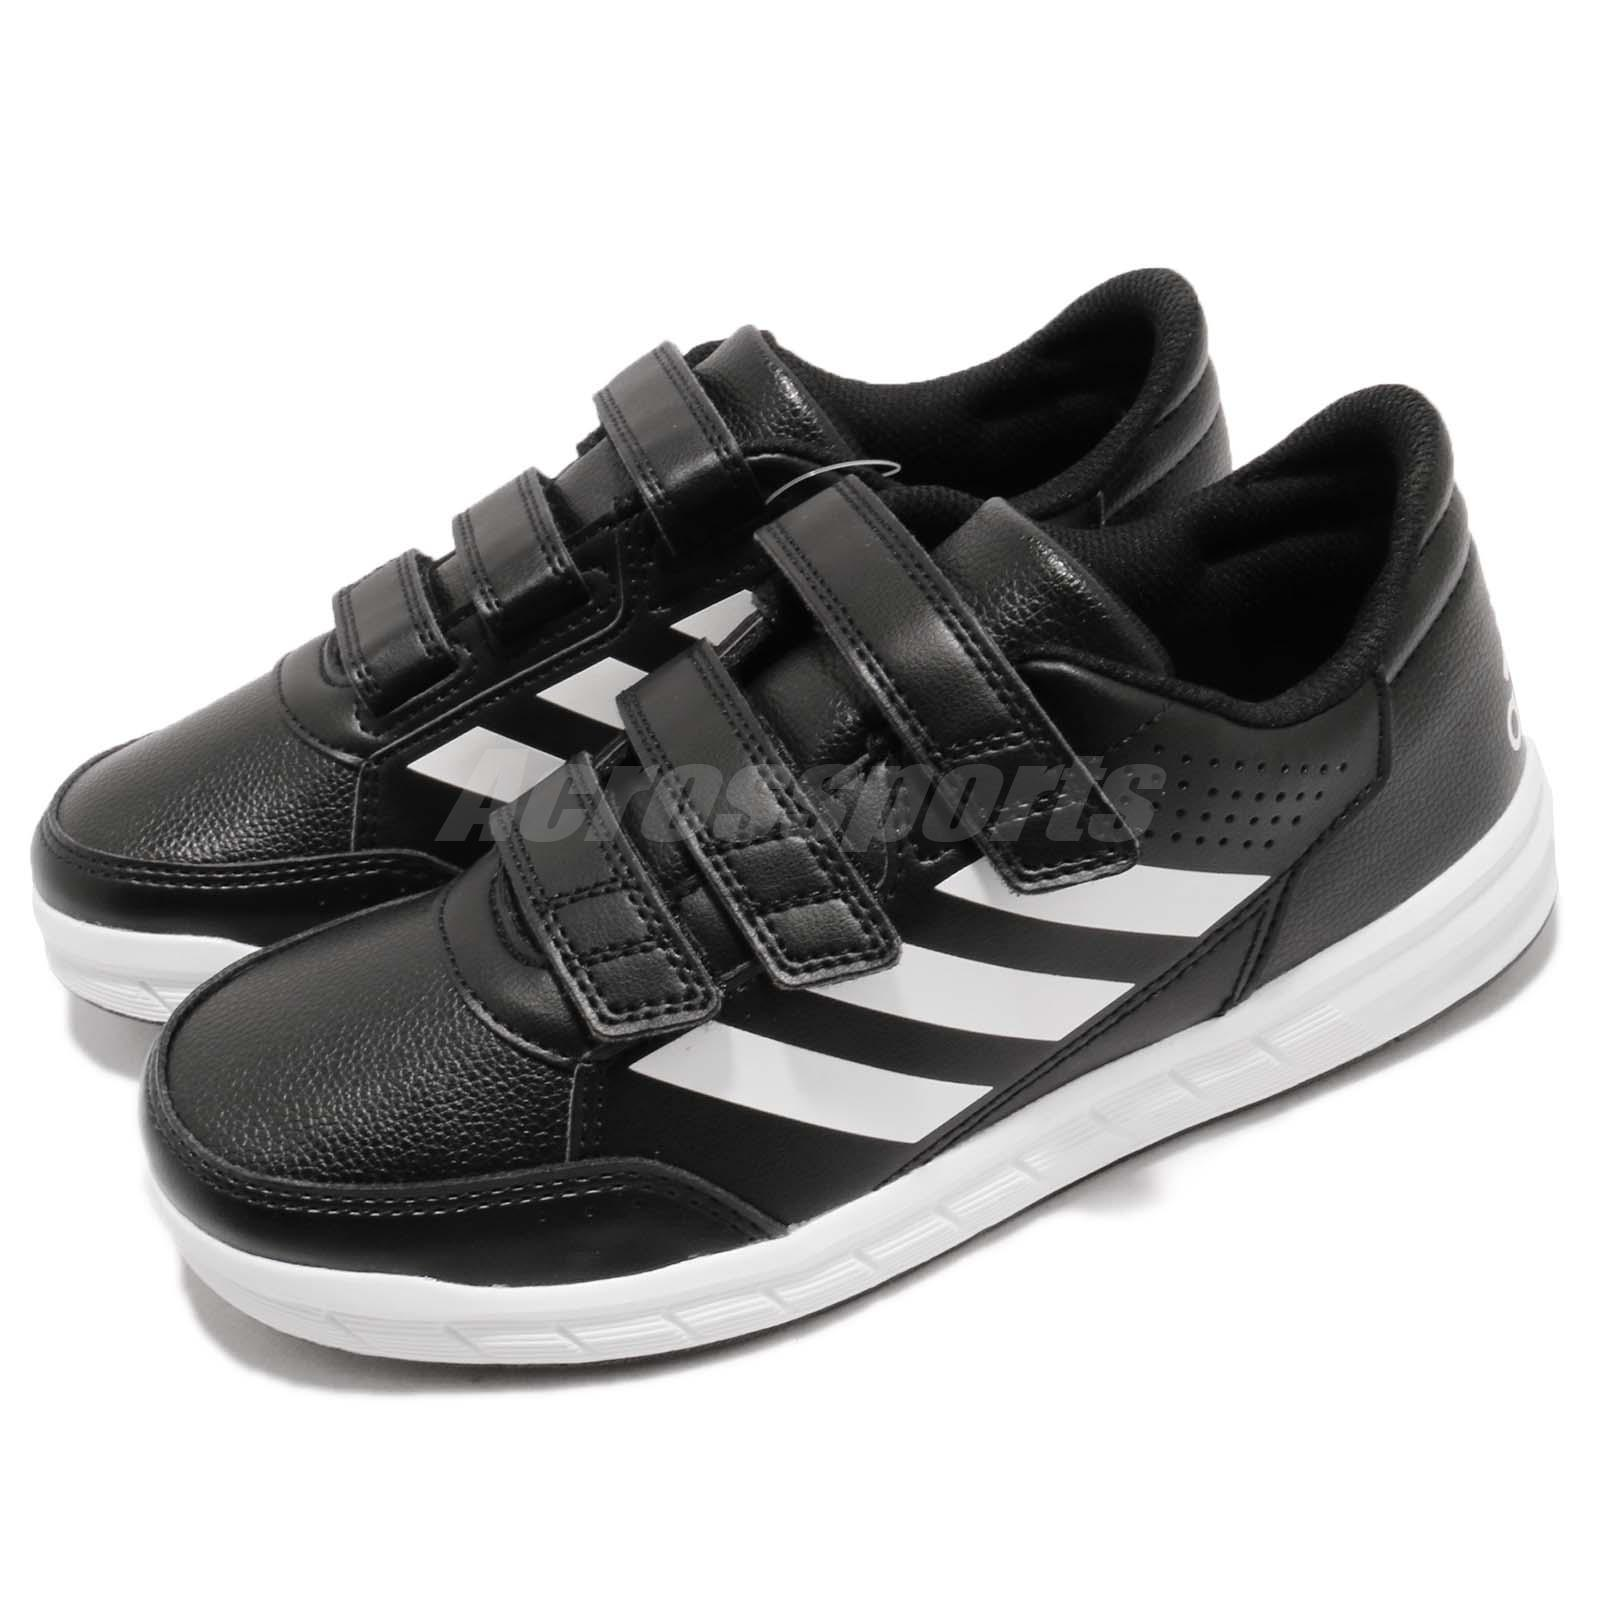 low priced 1e546 57bbb Details about adidas AltaSport CF K Black White Strap Kid Junior Youth Shoes  Sneakers BA7459